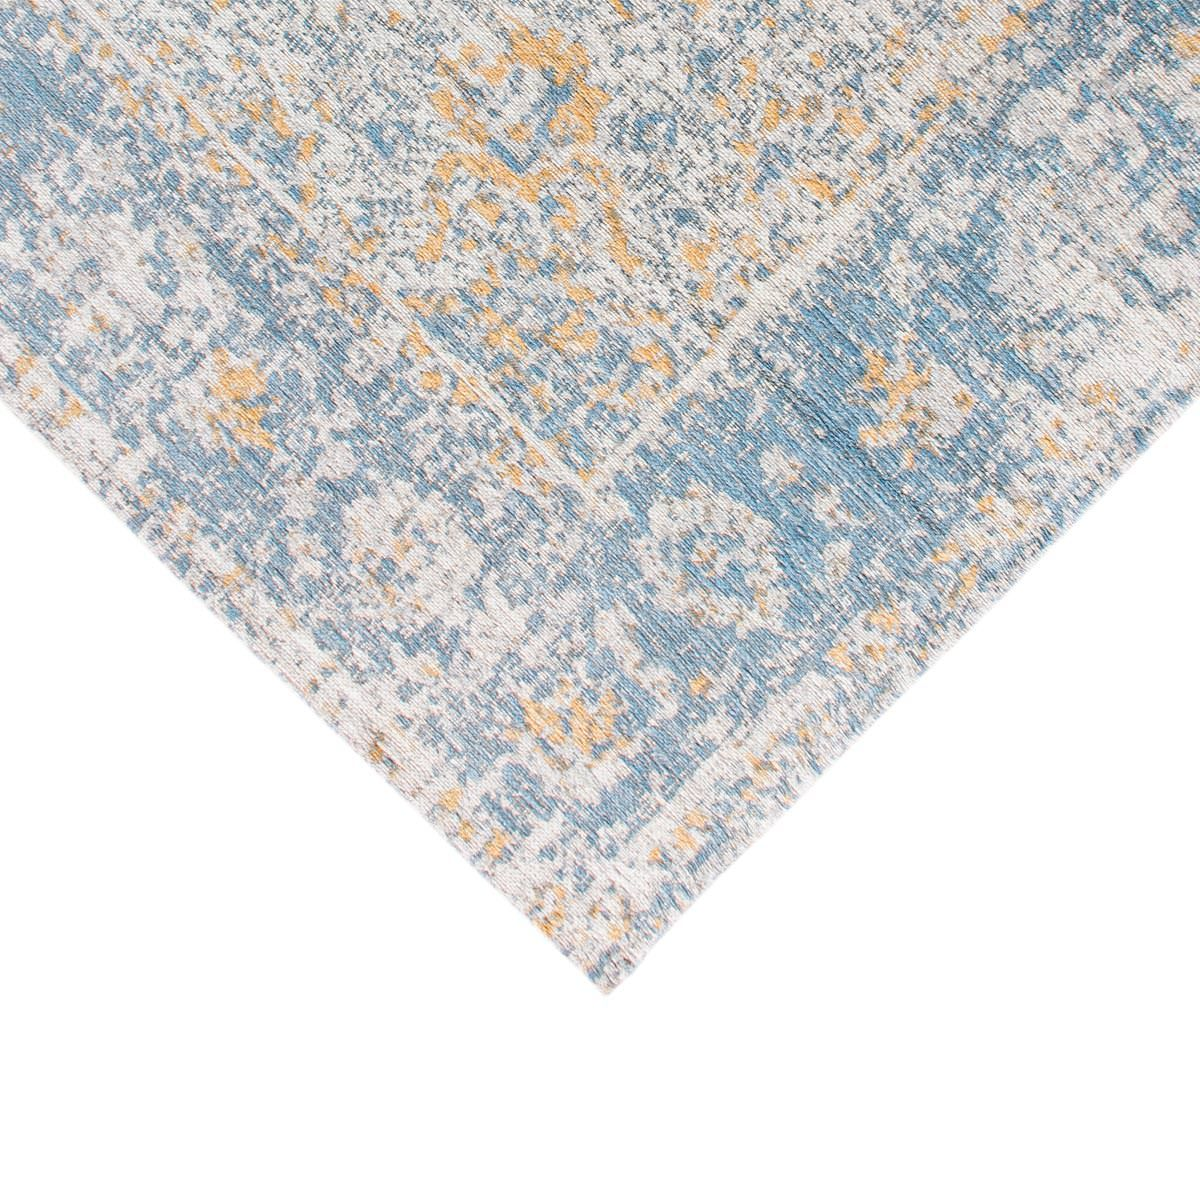 Marseille Rug 34 Blue/Beige/Yellow 6